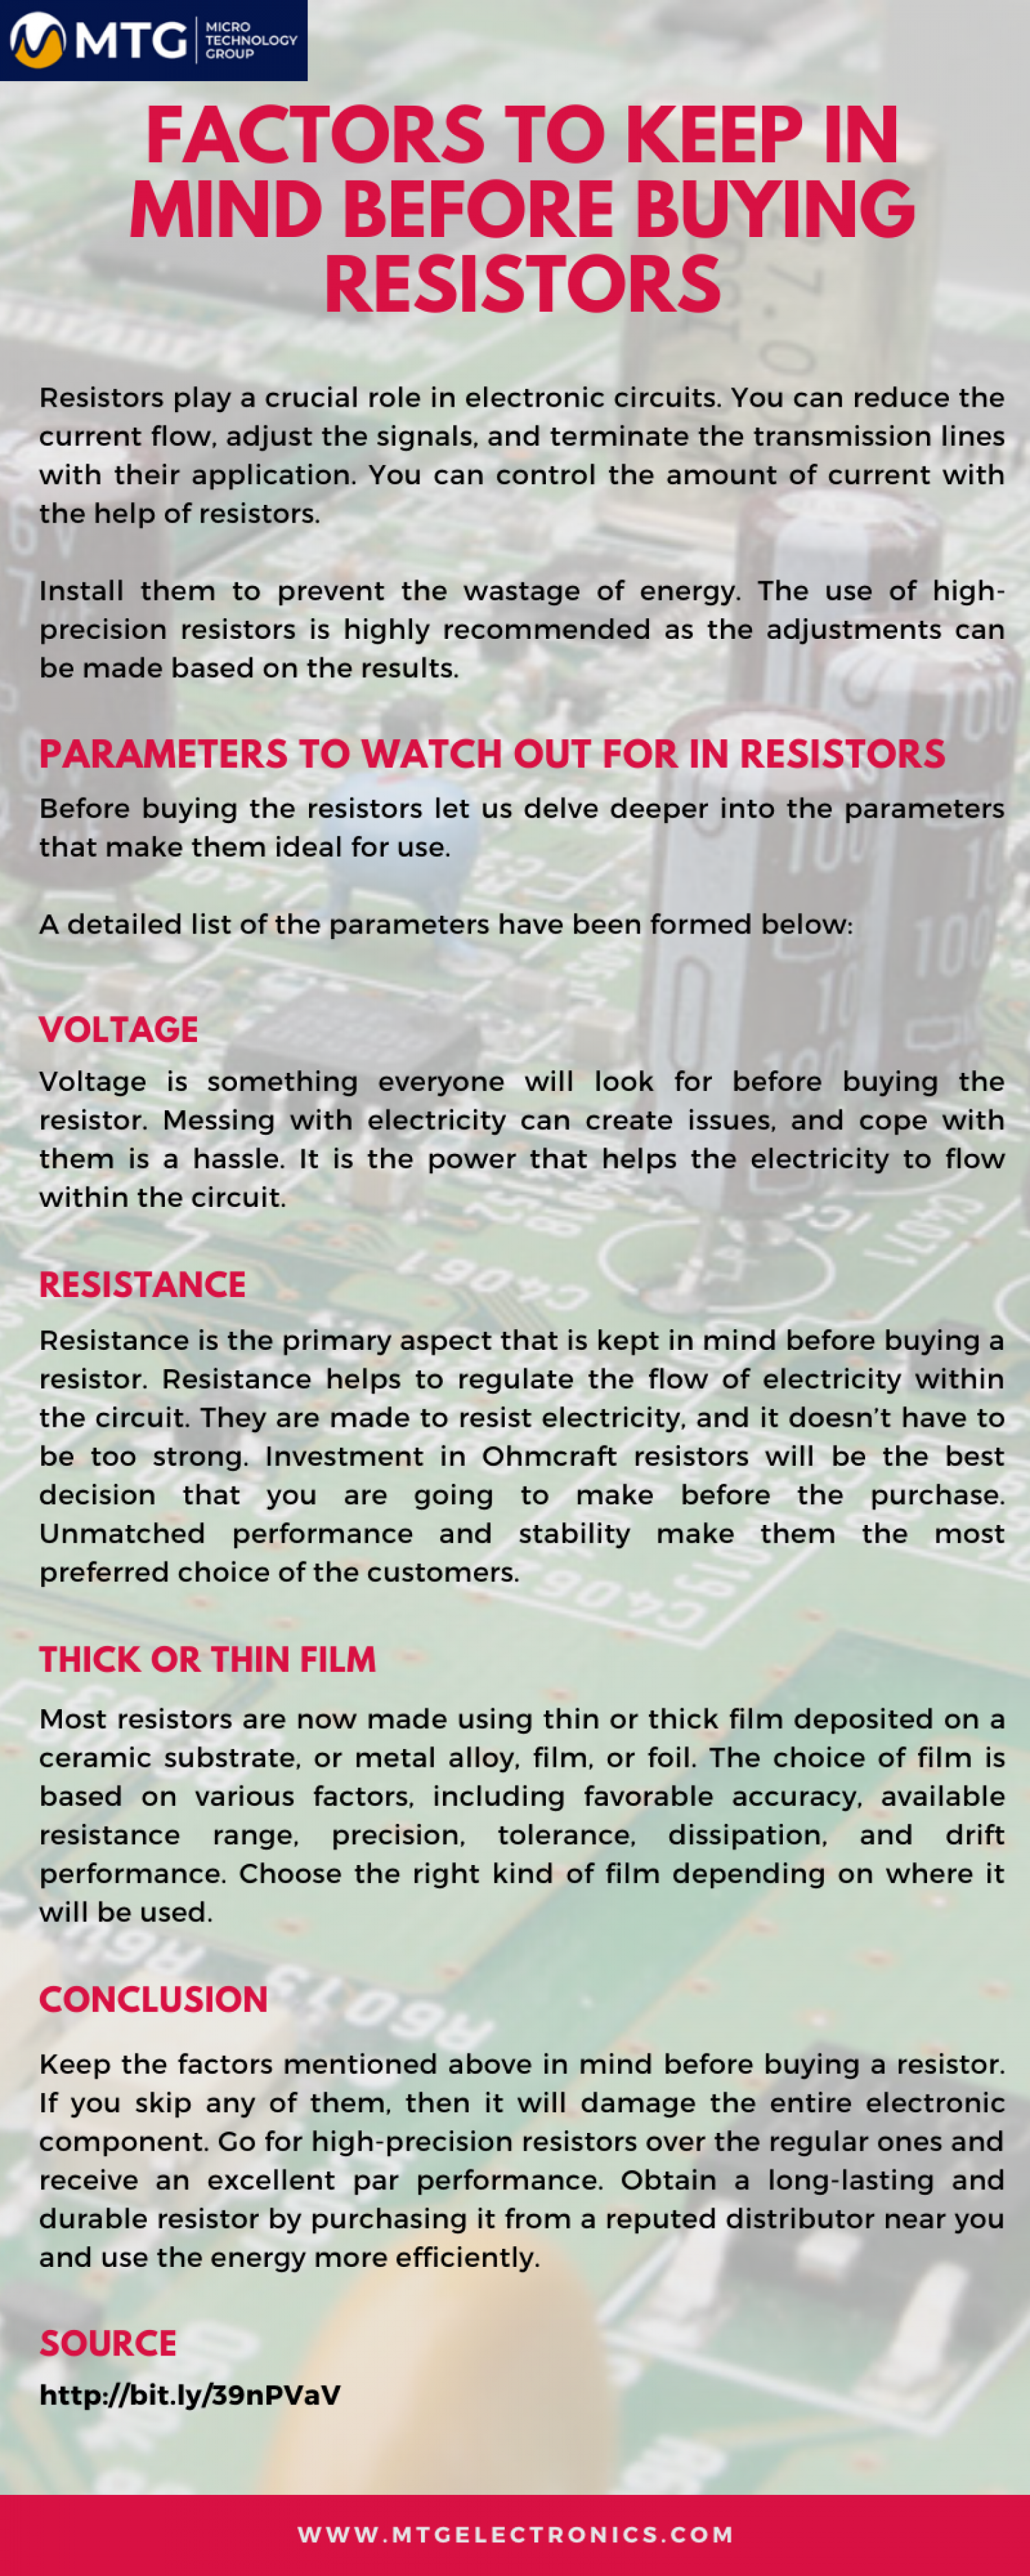 Factors to Keep in Mind Before Buying Resistors Infographic